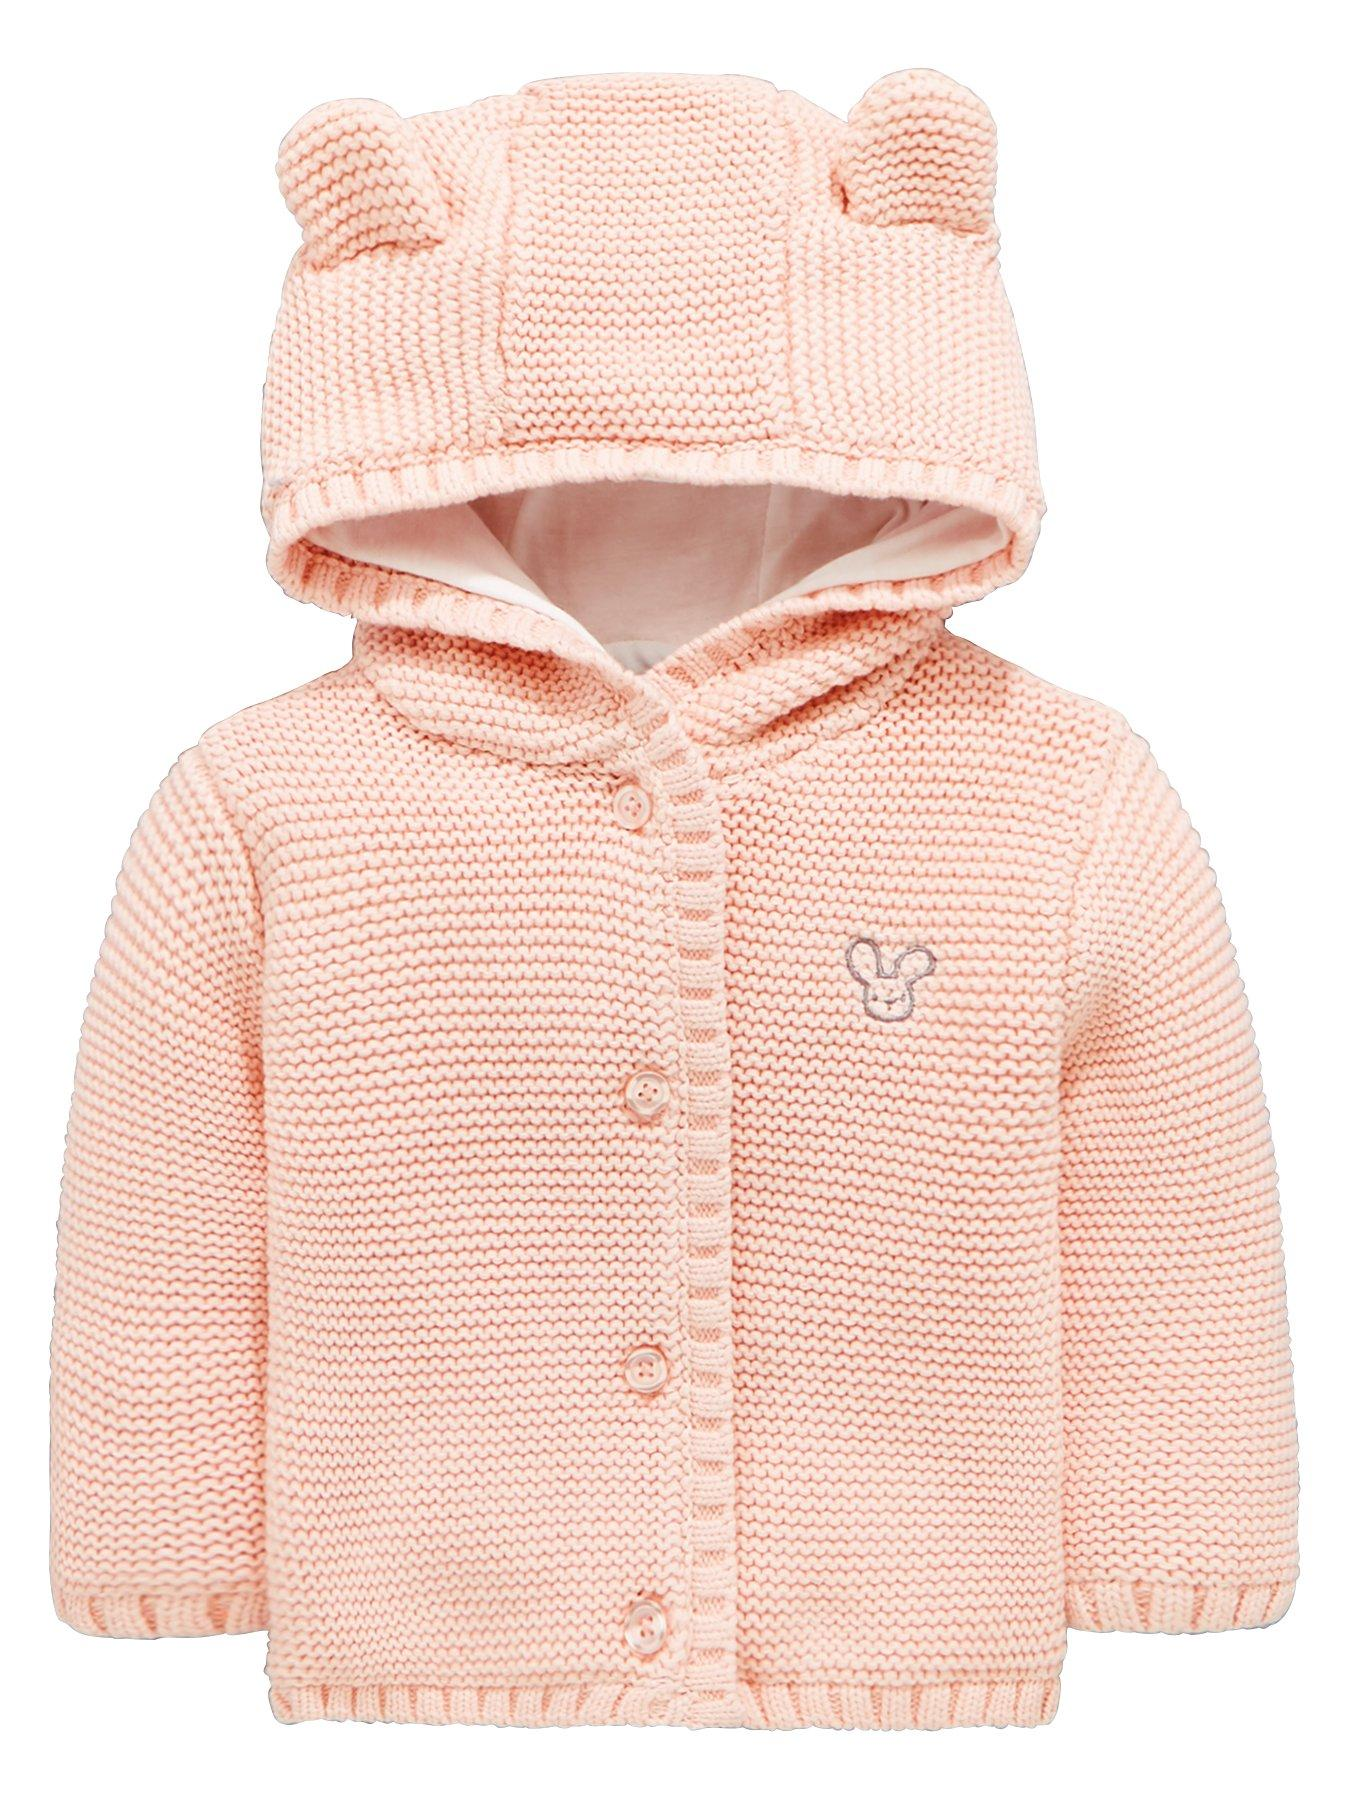 6-9 Months Light Pink Hoody Zip Up Cardigan Next Clothing, Shoes & Accessories Baby & Toddler Clothing